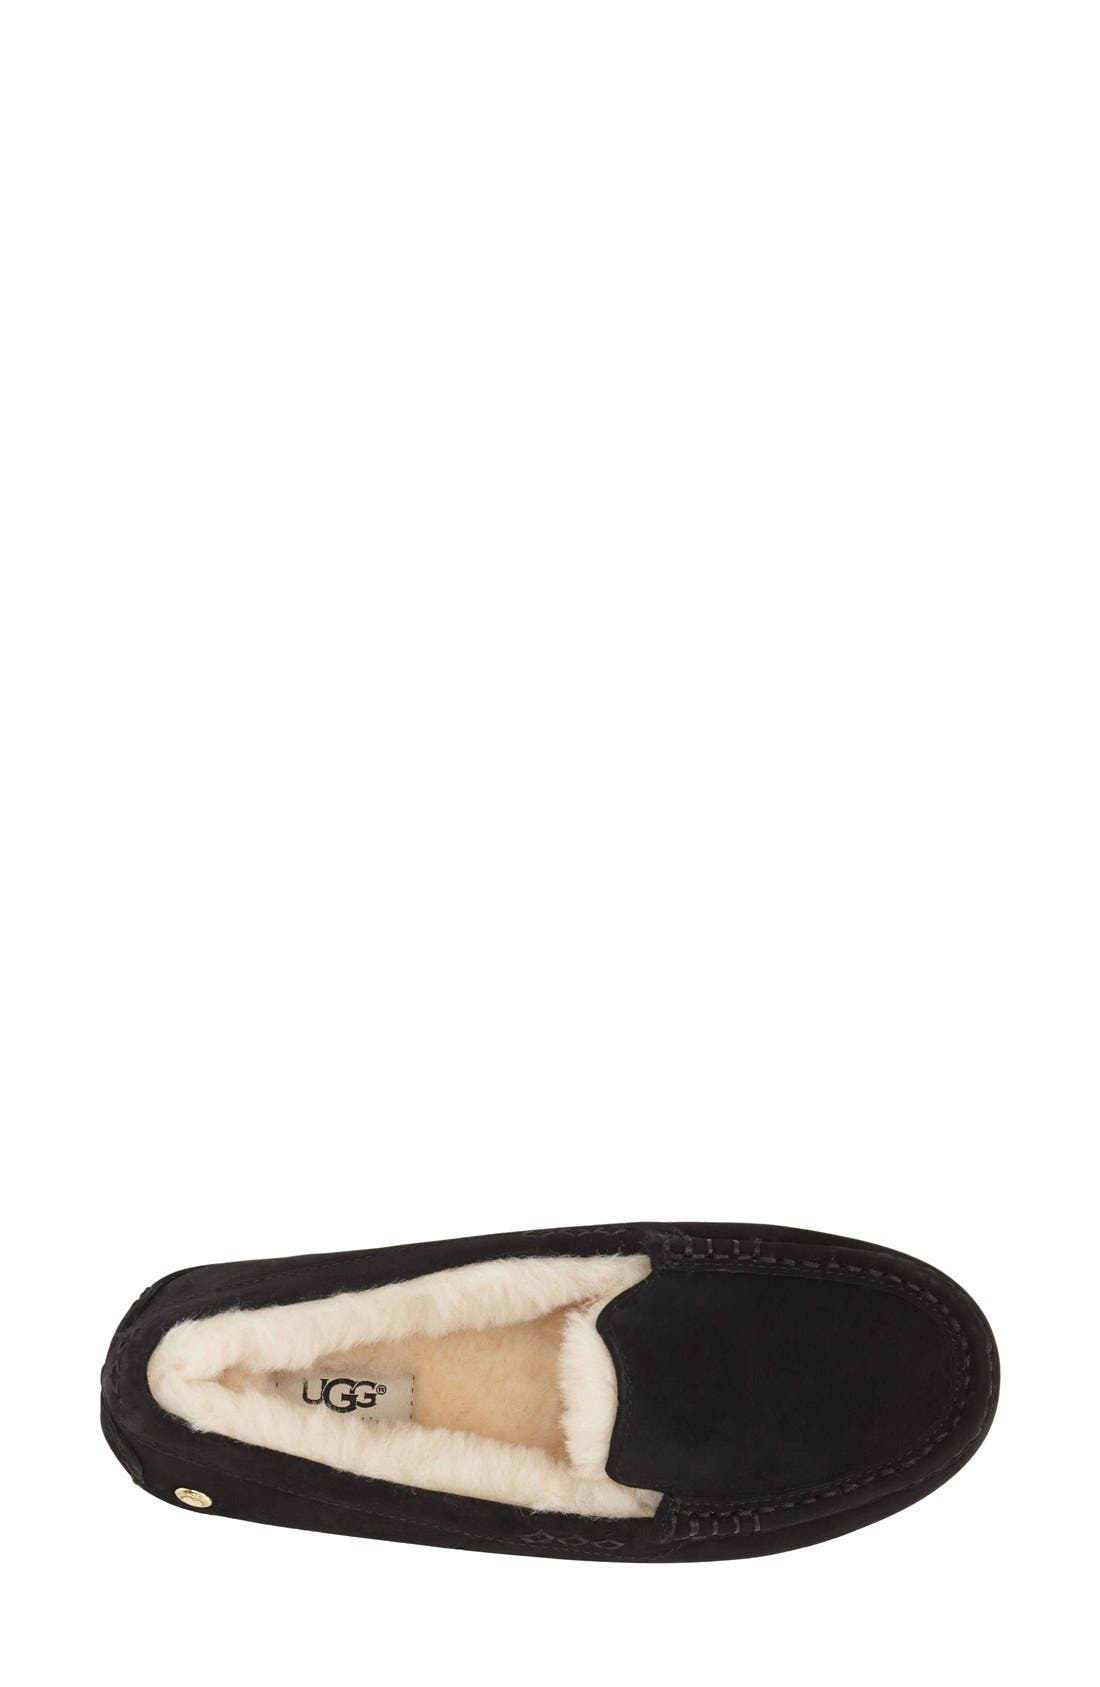 'Ansley' Ornate Slipper,                             Alternate thumbnail 2, color,                             001